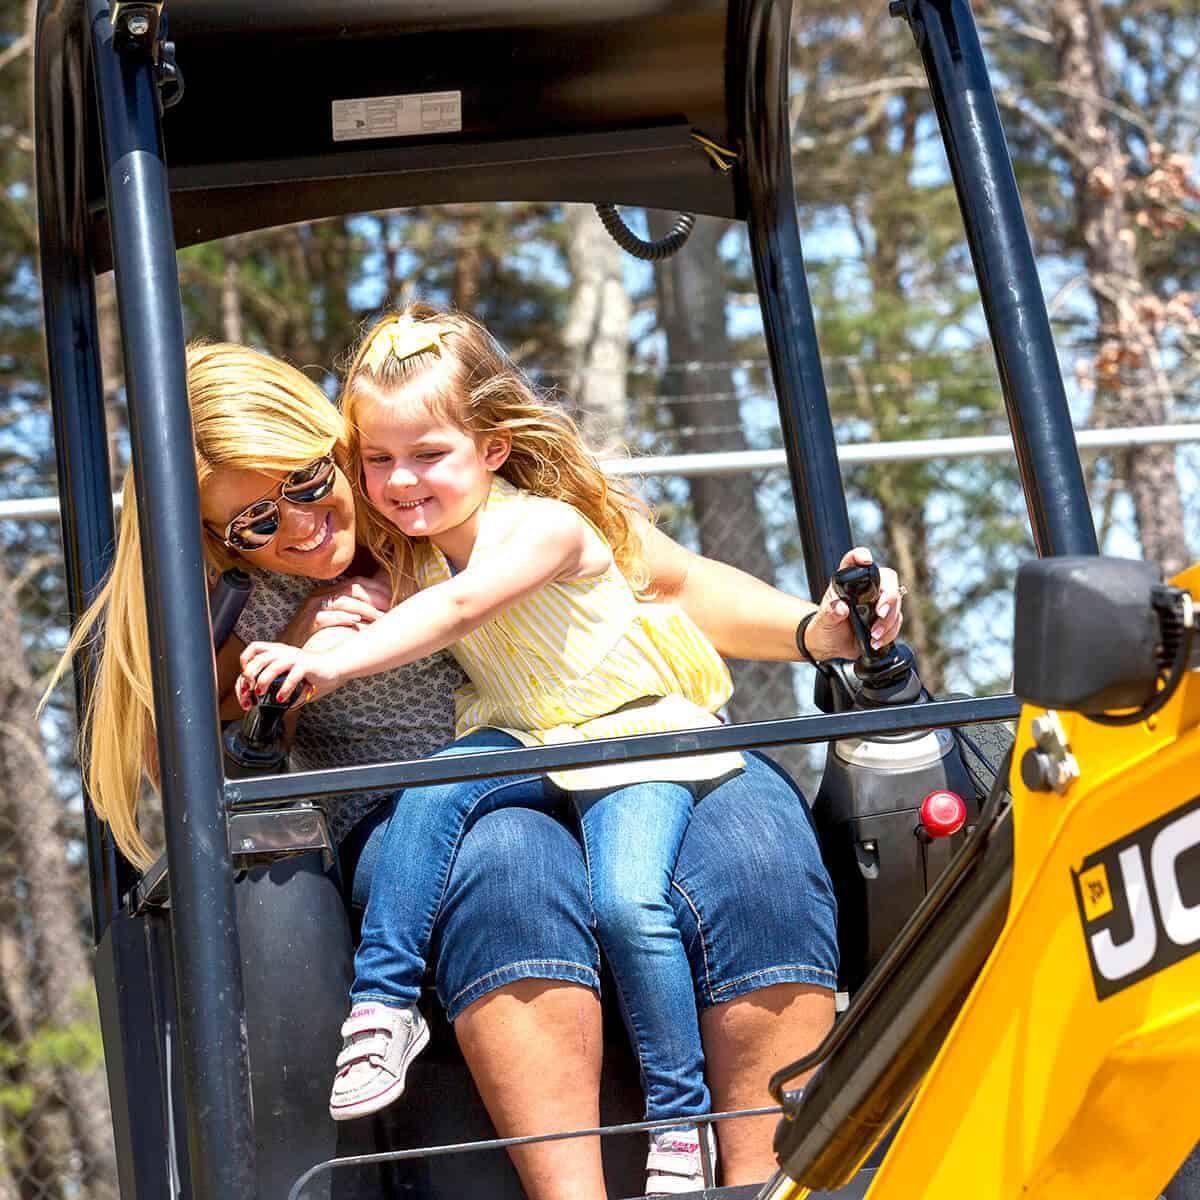 Mini digger with woman and child operating